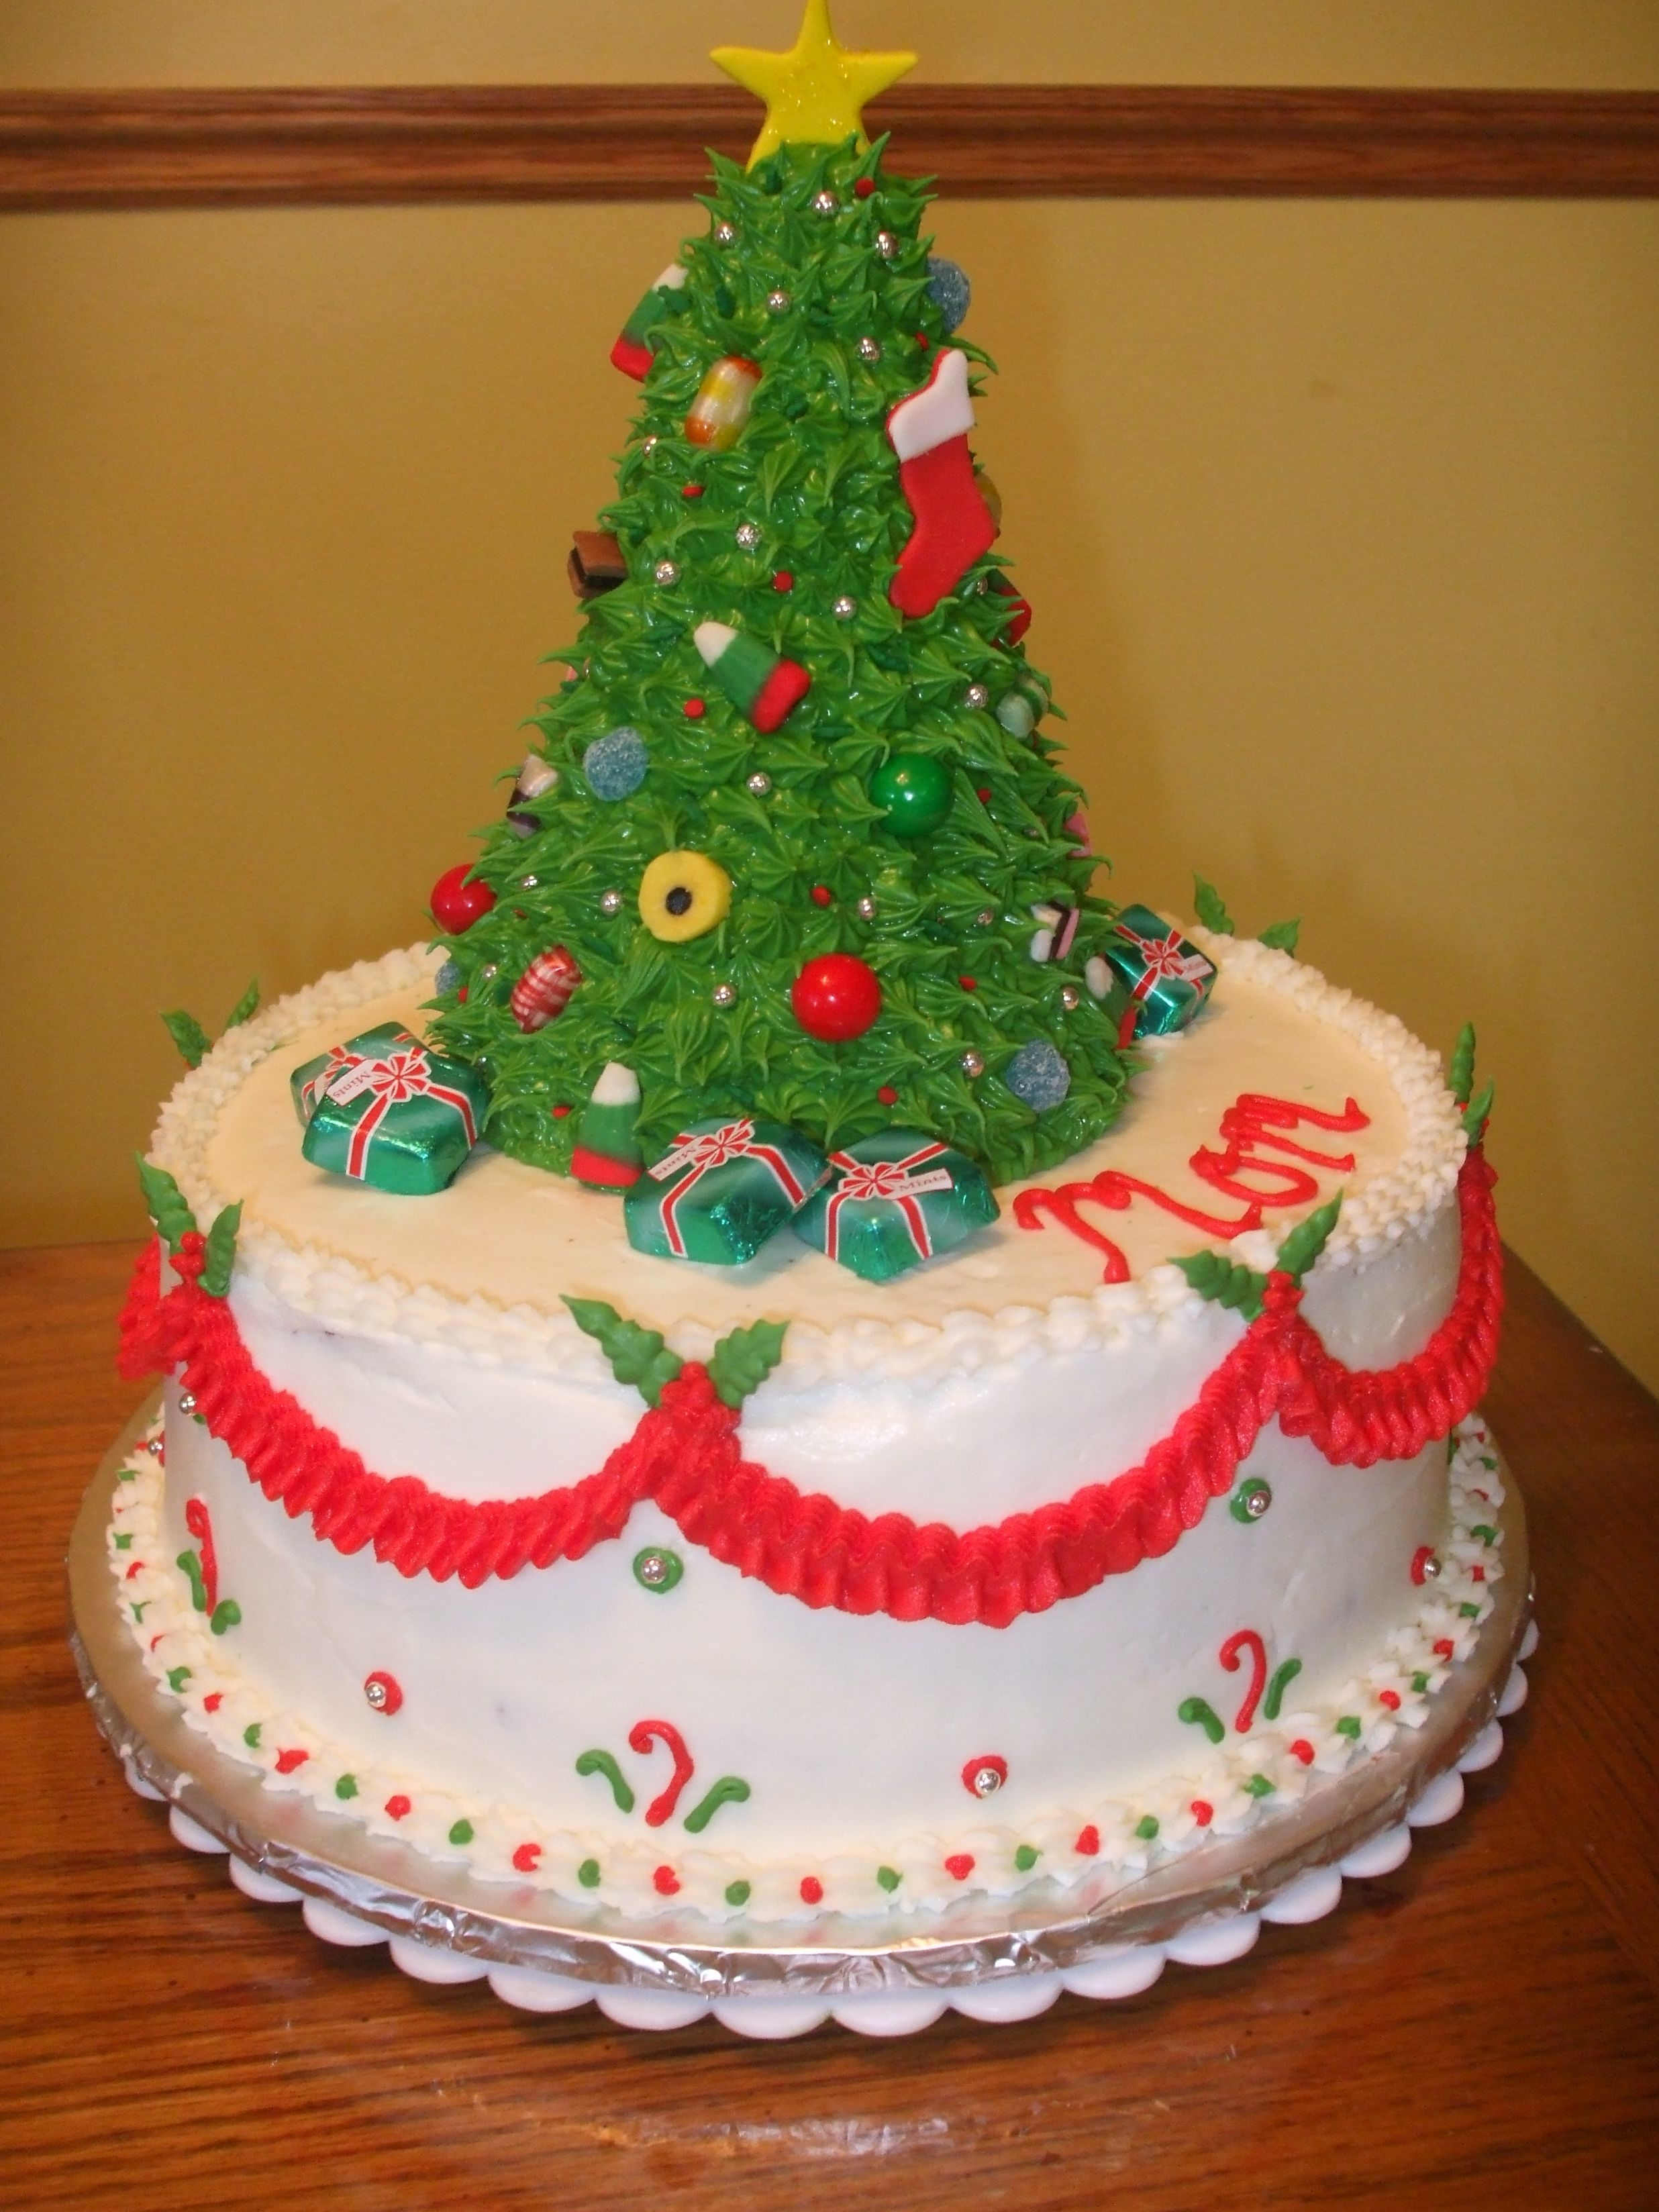 Christmas Tree Cake This Was A Birthday Cake For My Mom Whose